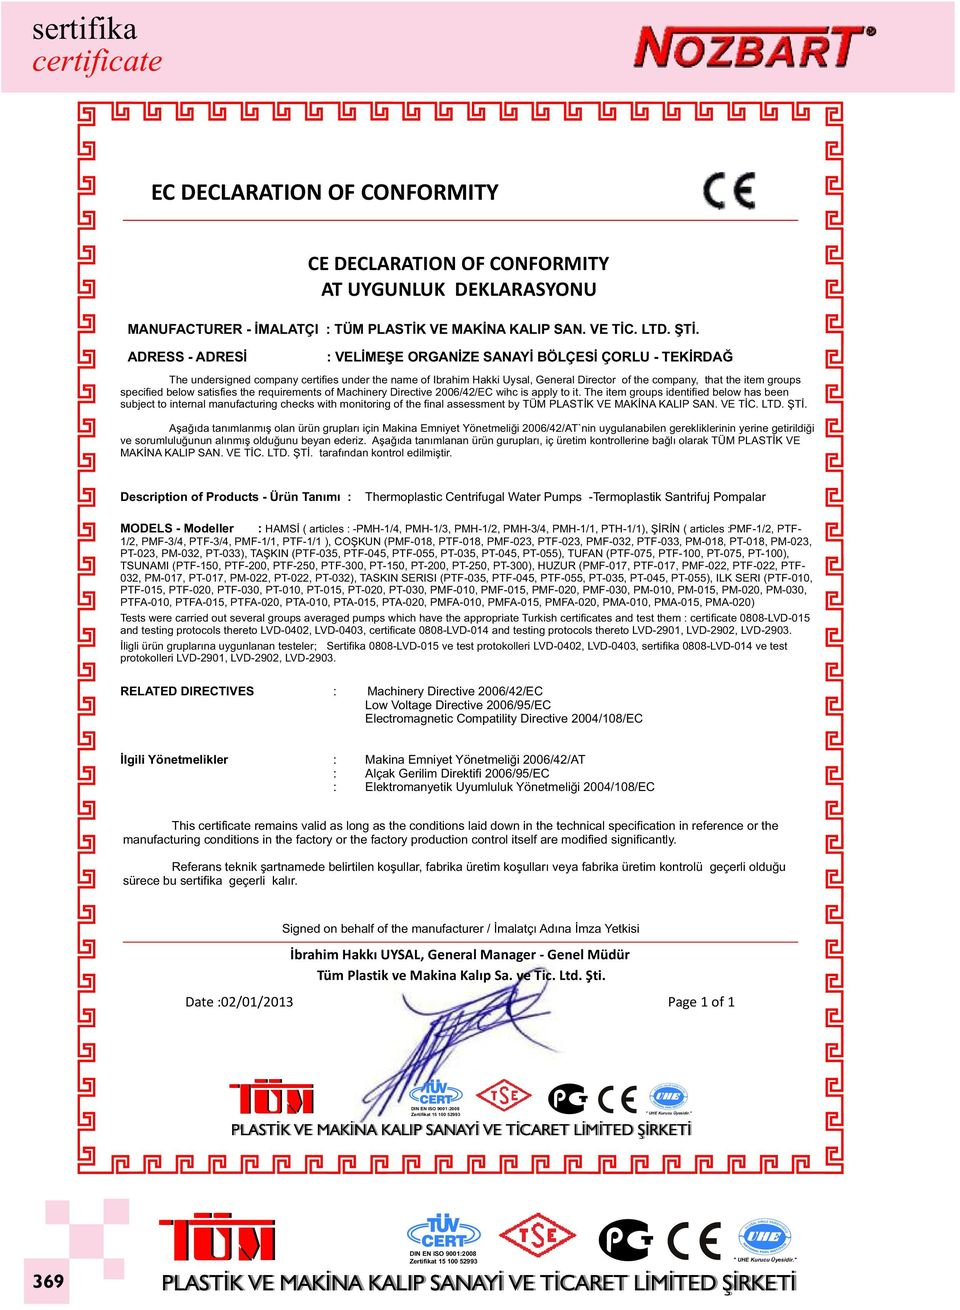 specified below satisfies the requirements of Machinery Directive 2006/42/EC wihc is apply to it.